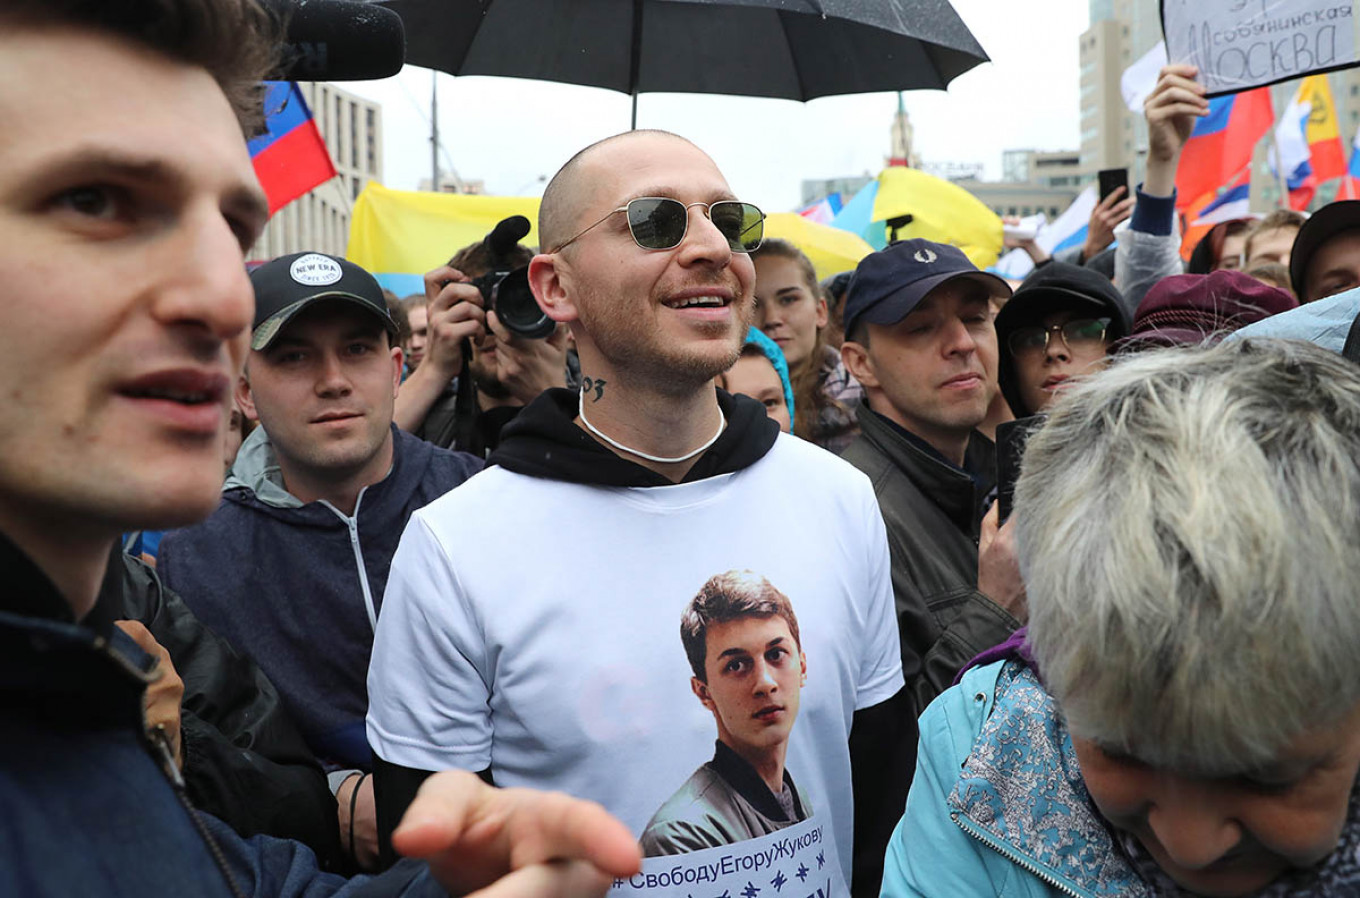 Russian rapper Oxxxymiron at an Aug. 10 demonstration for free elections in Moscow.				 				Sergei Savostyanov / TASS